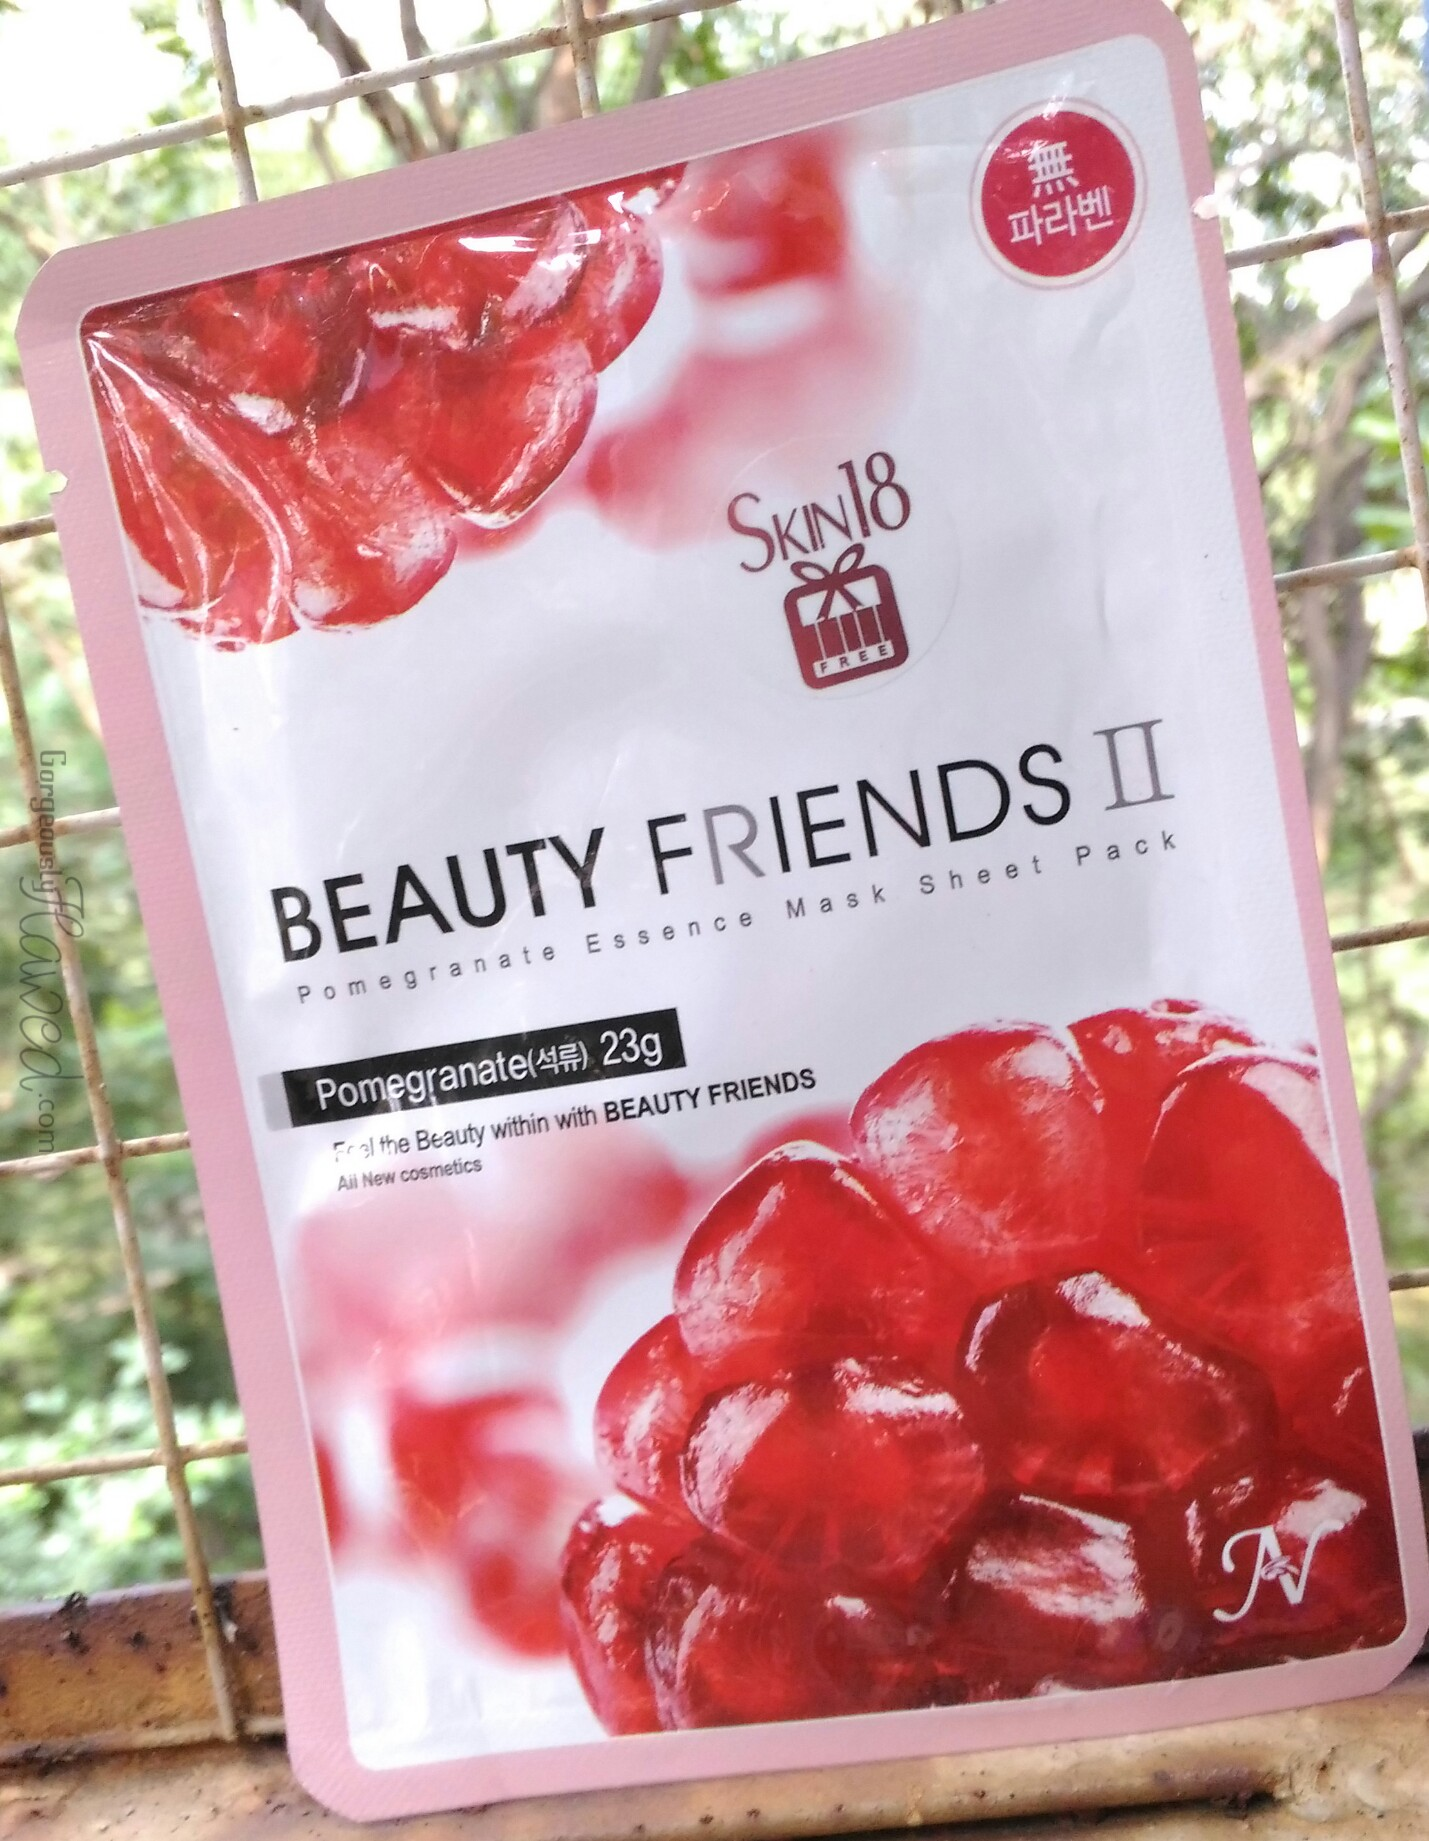 Beauty Friends II Essence Sheet Mask Pack Pomegranate